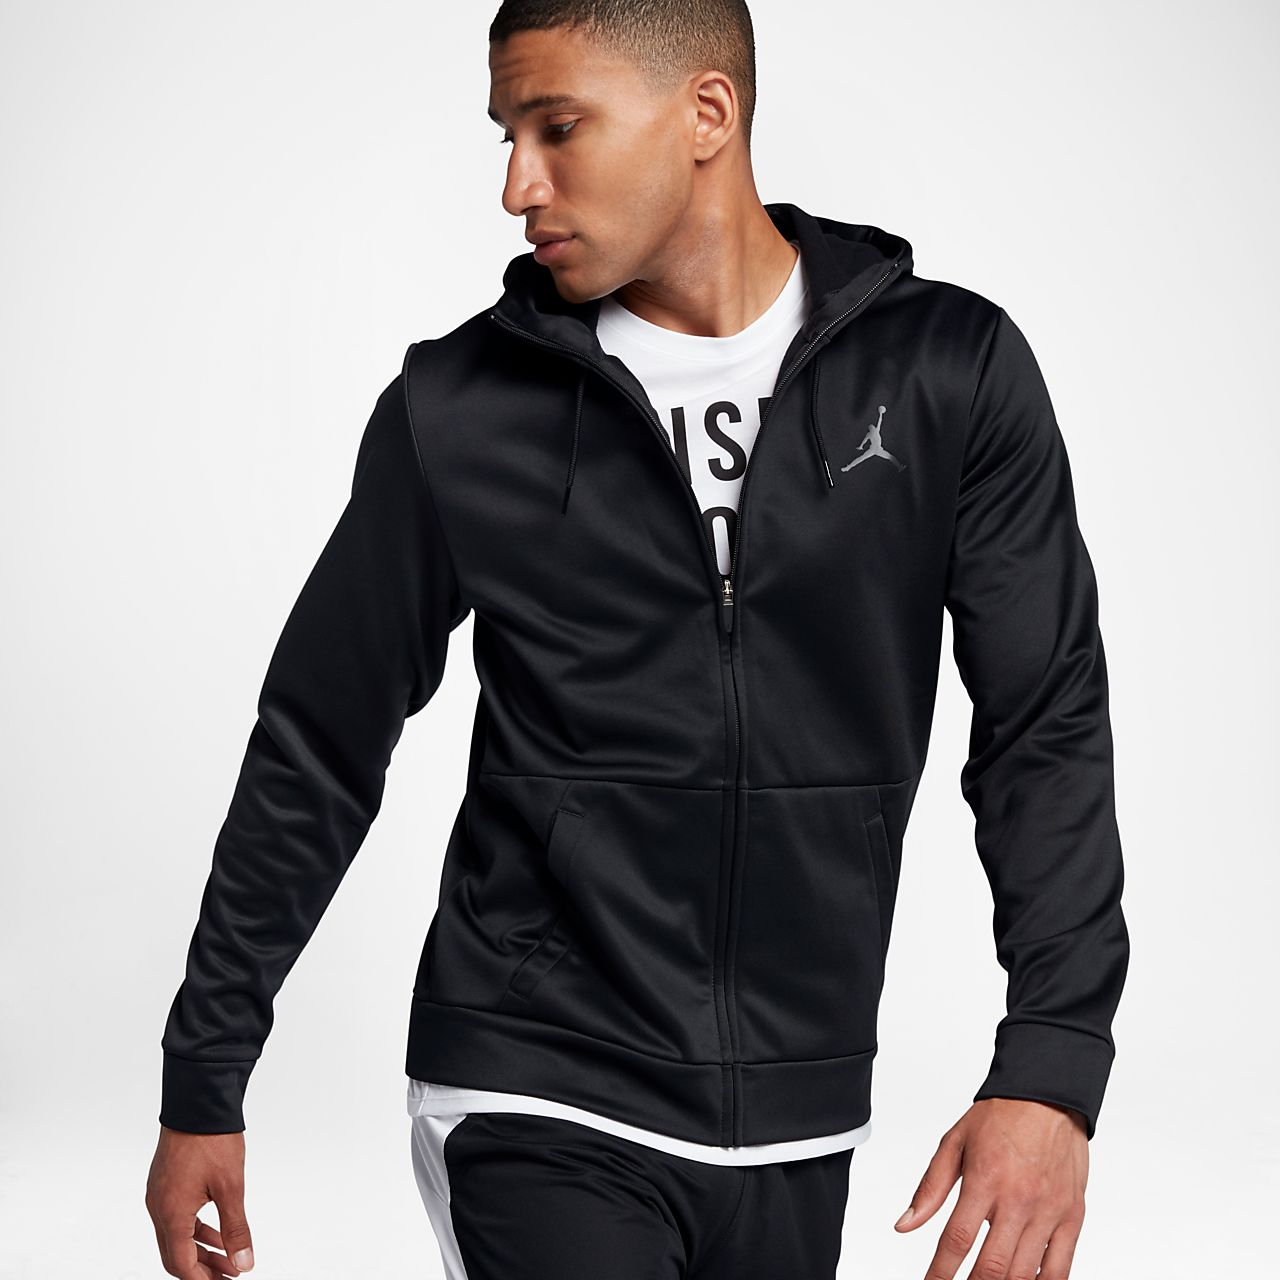 374e81fd9800 Jordan Therma 23 Alpha Men s Full-Zip Hoodie. Nike.com AU